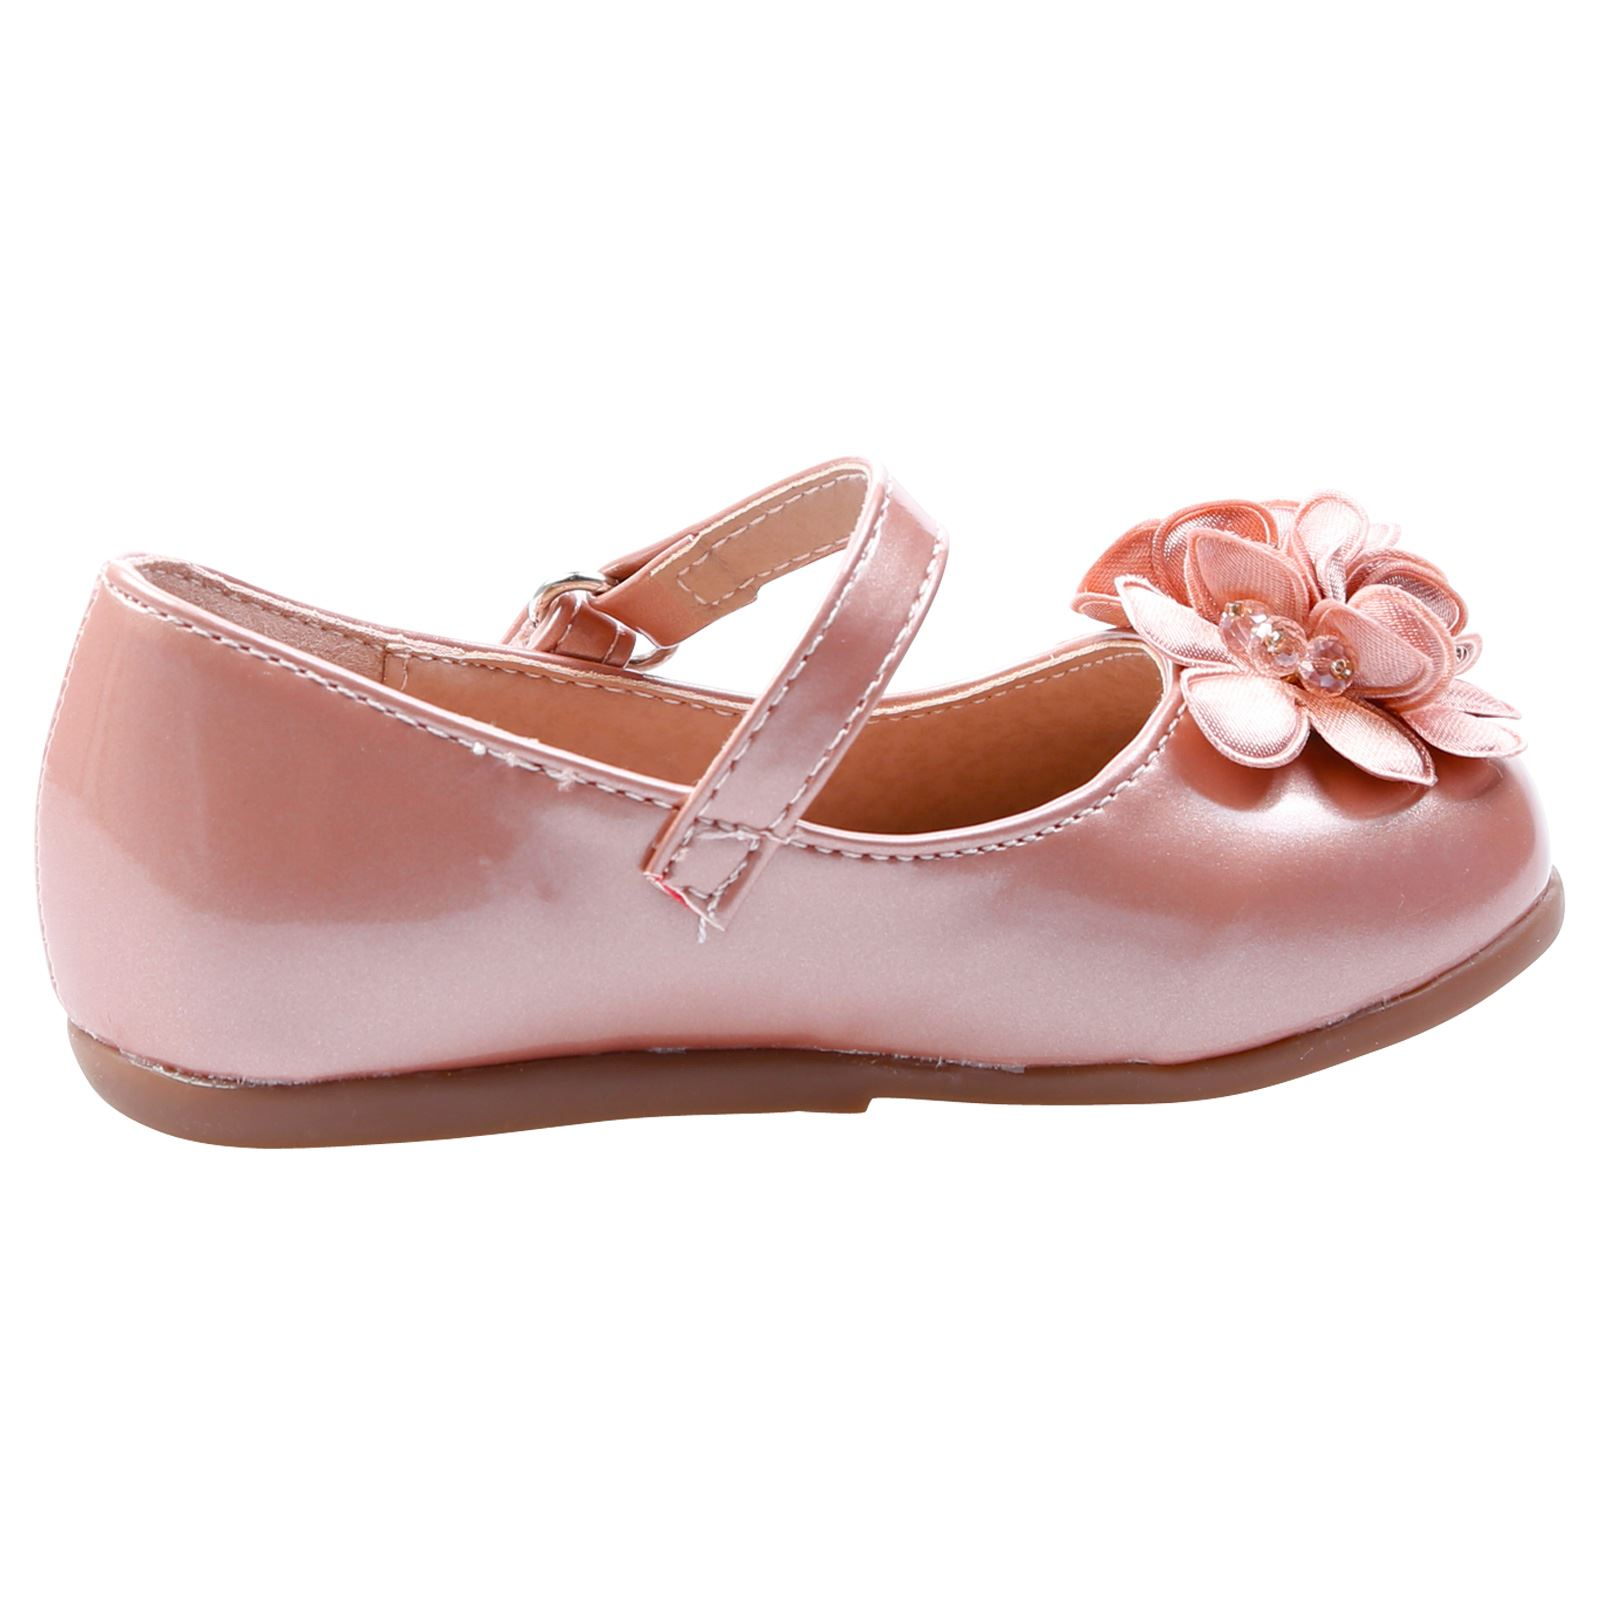 Clarks Bridesmaid Shoes